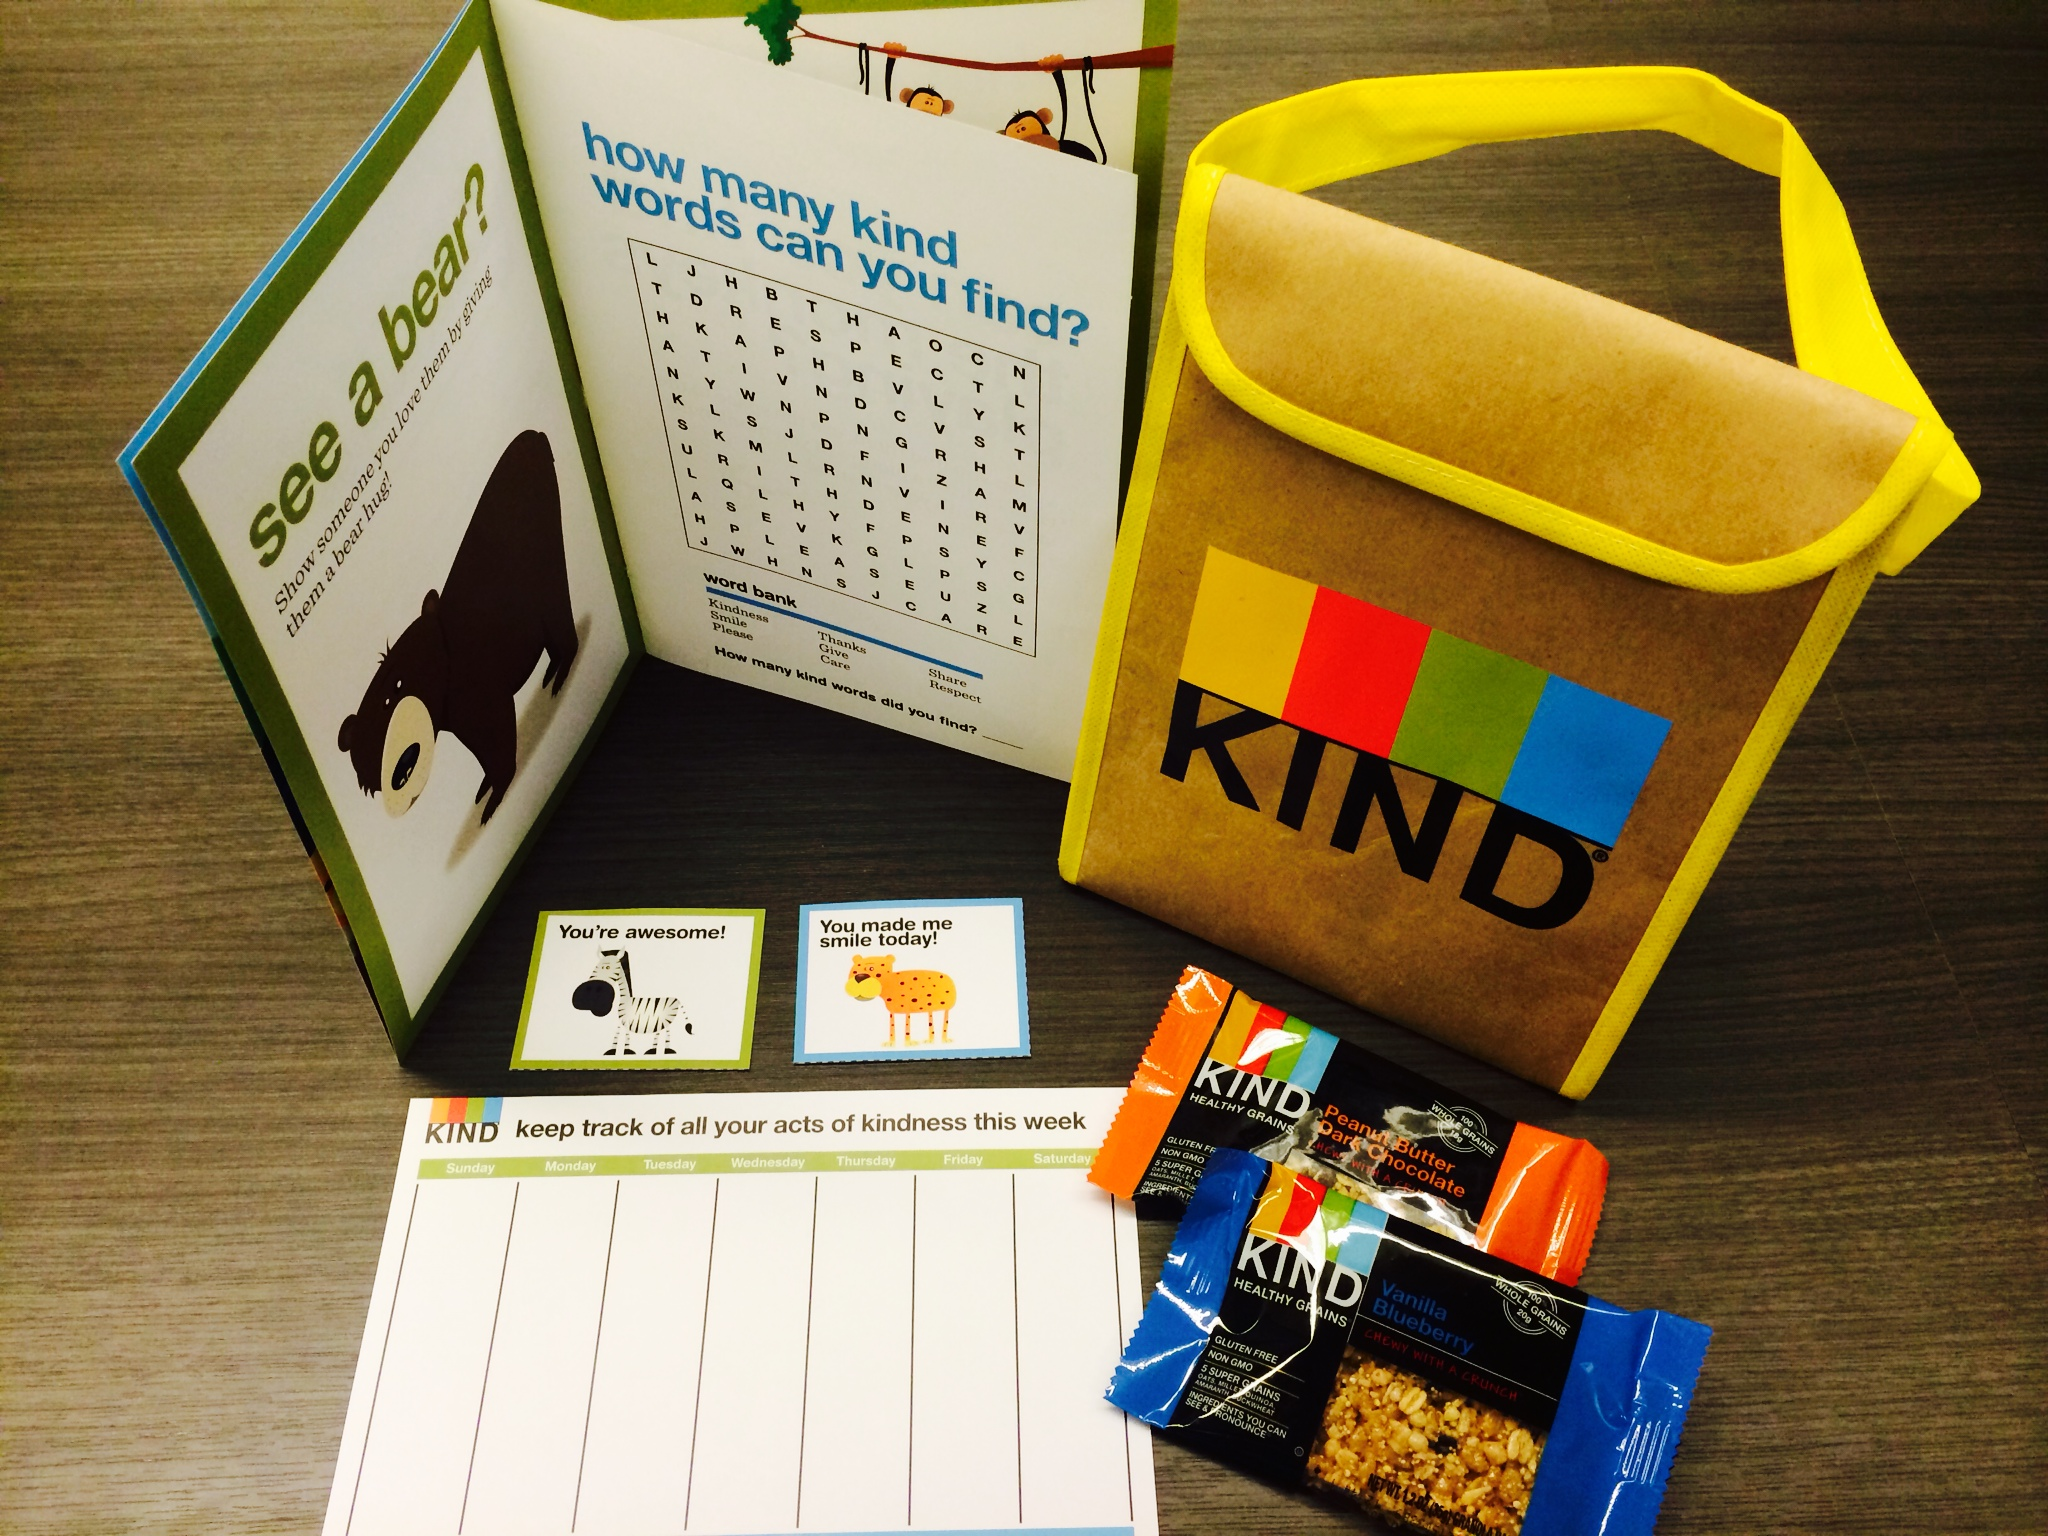 KIND Kindness Kit that guests will receive as a gift to take home.